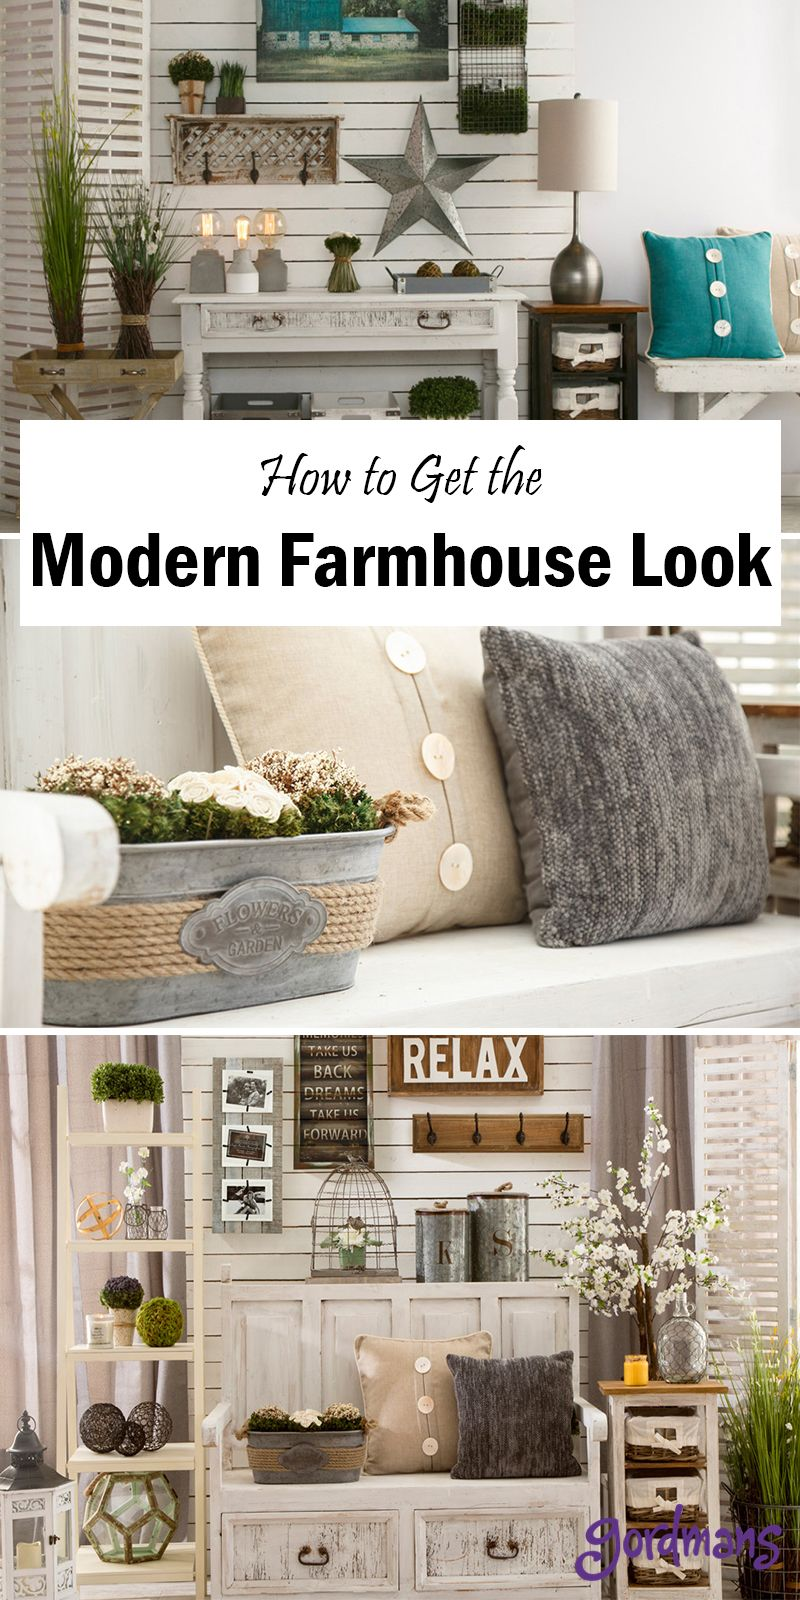 ideas style clean and home decorating diy farmhouse pinterest on decor your every for room crisp organized in